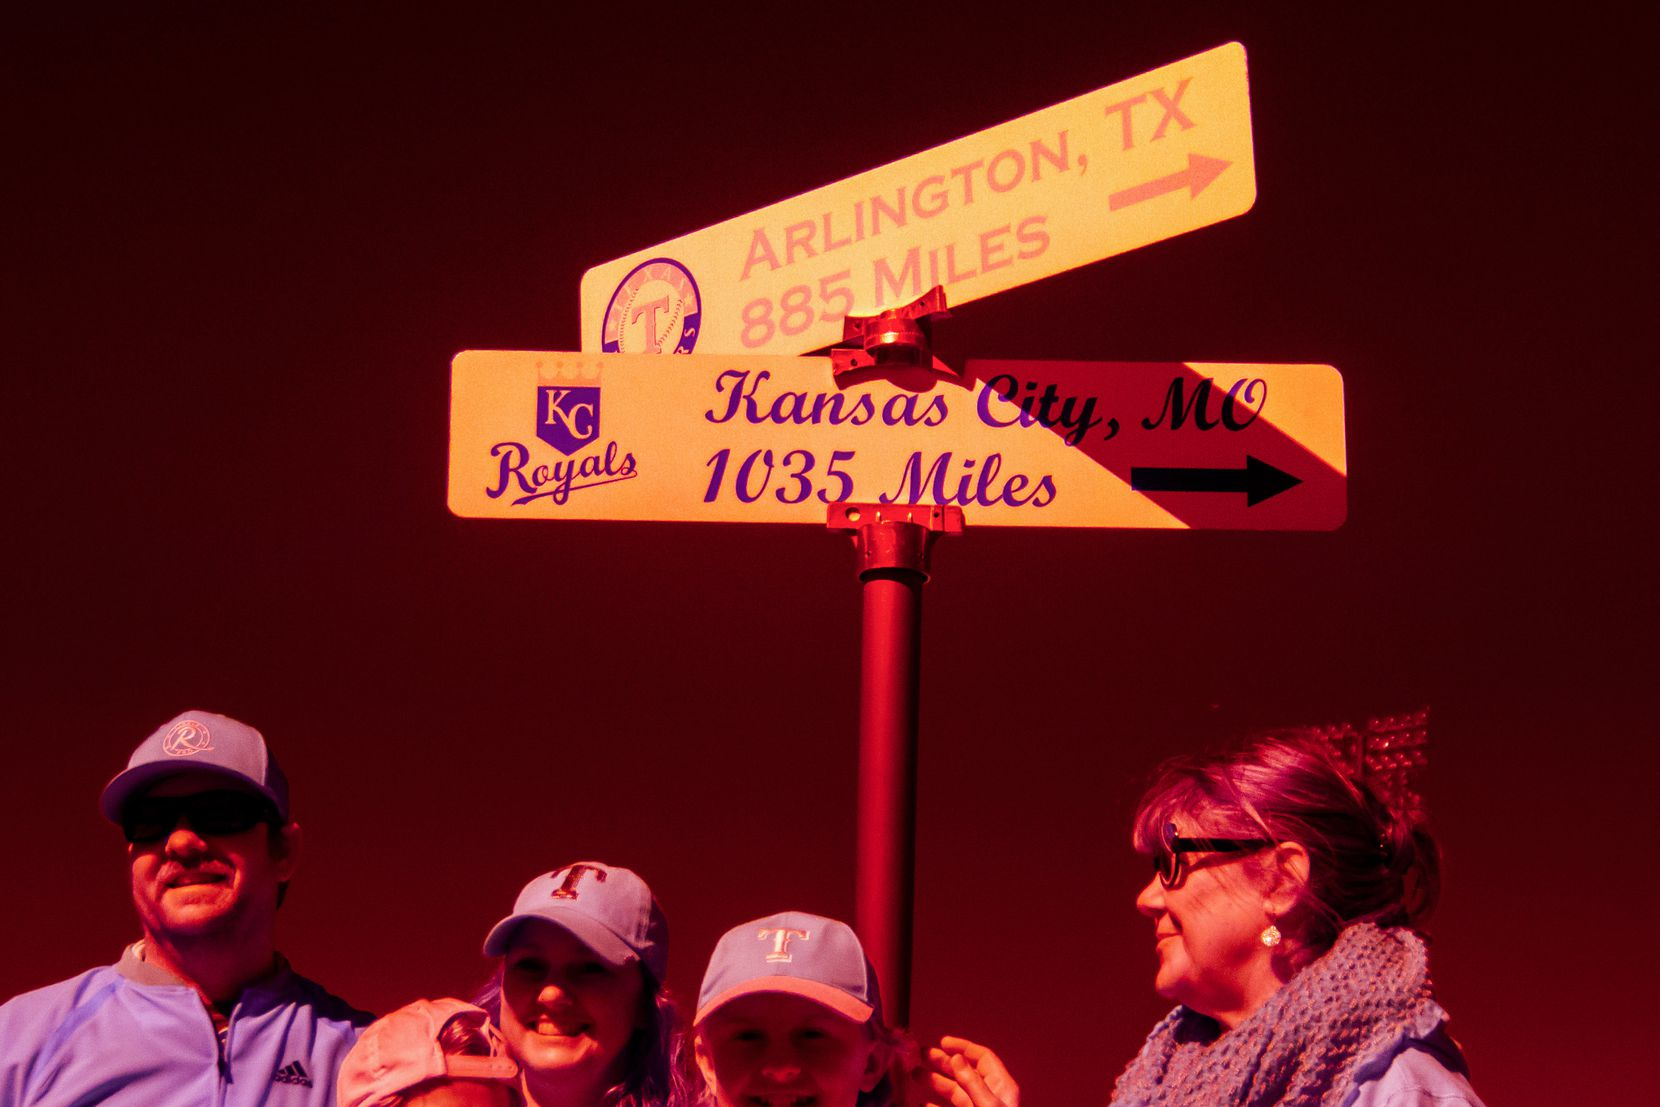 Fans pose for photos near a sign showing the distances to the homes of the Texas Rangers and the Kansas City Royals before a spring training baseball game at Surprise Stadium.